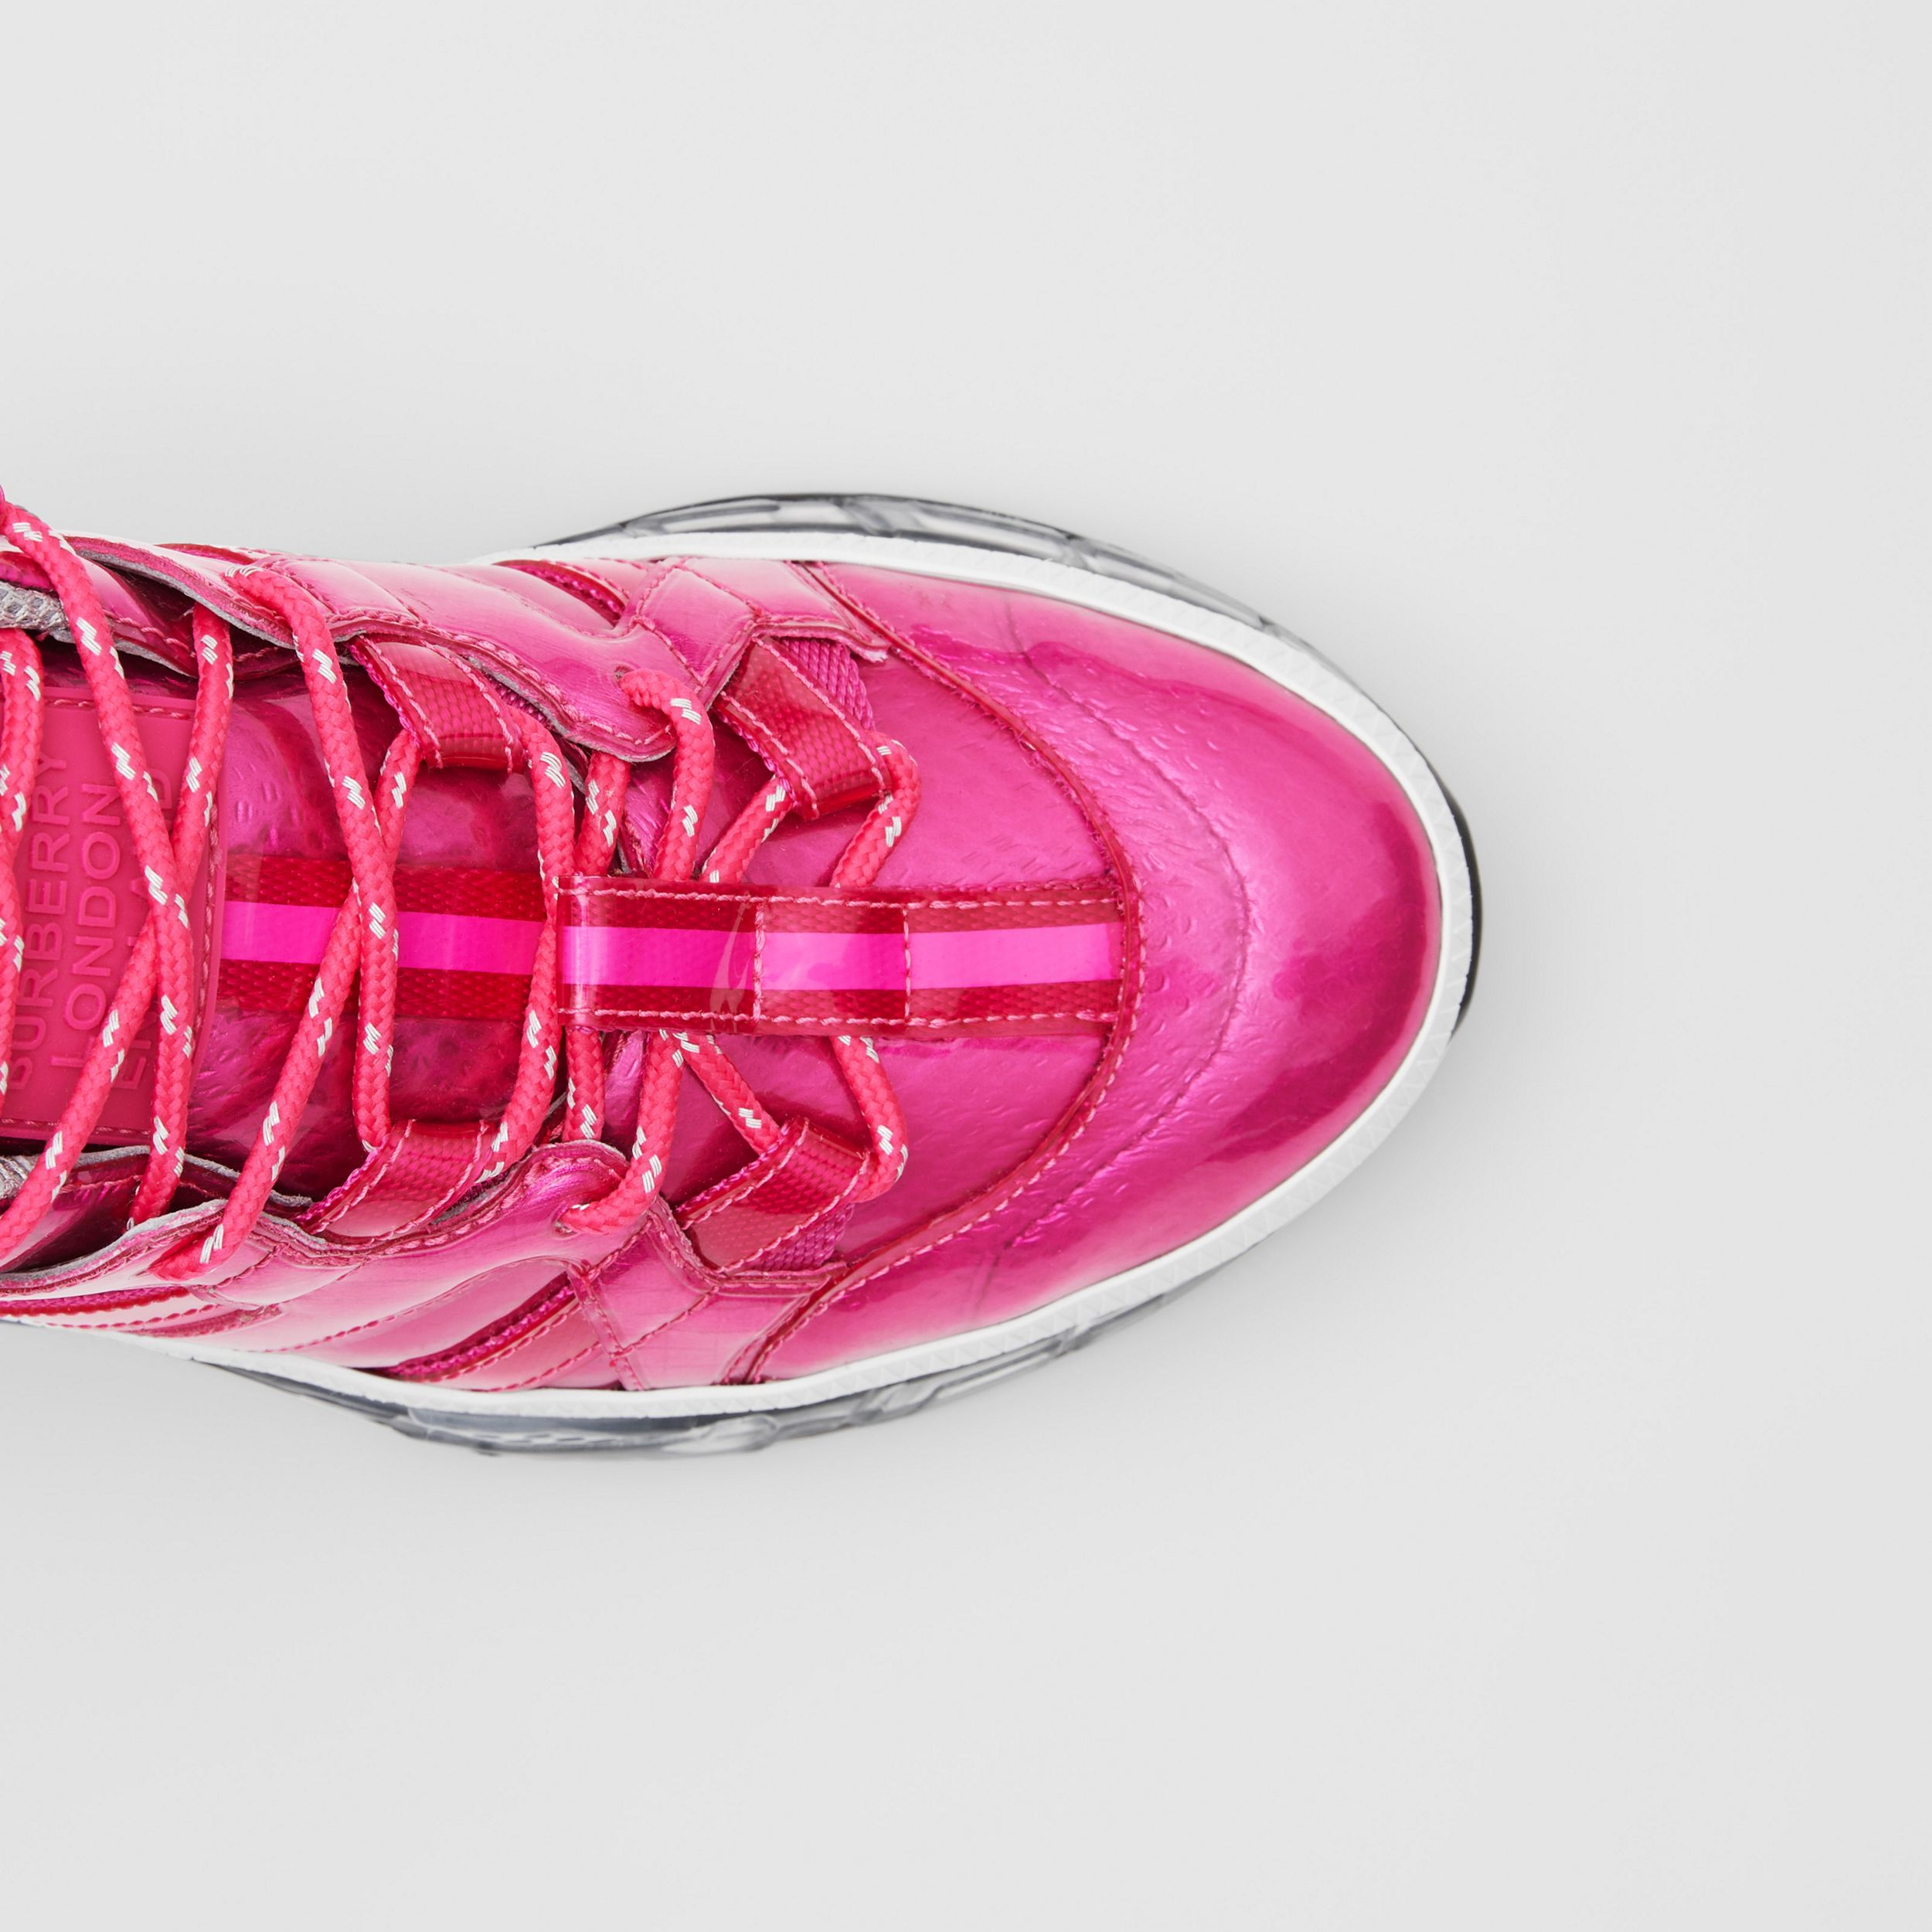 Vinyl and Nylon Union Sneakers in Fuchsia - Women | Burberry - 2